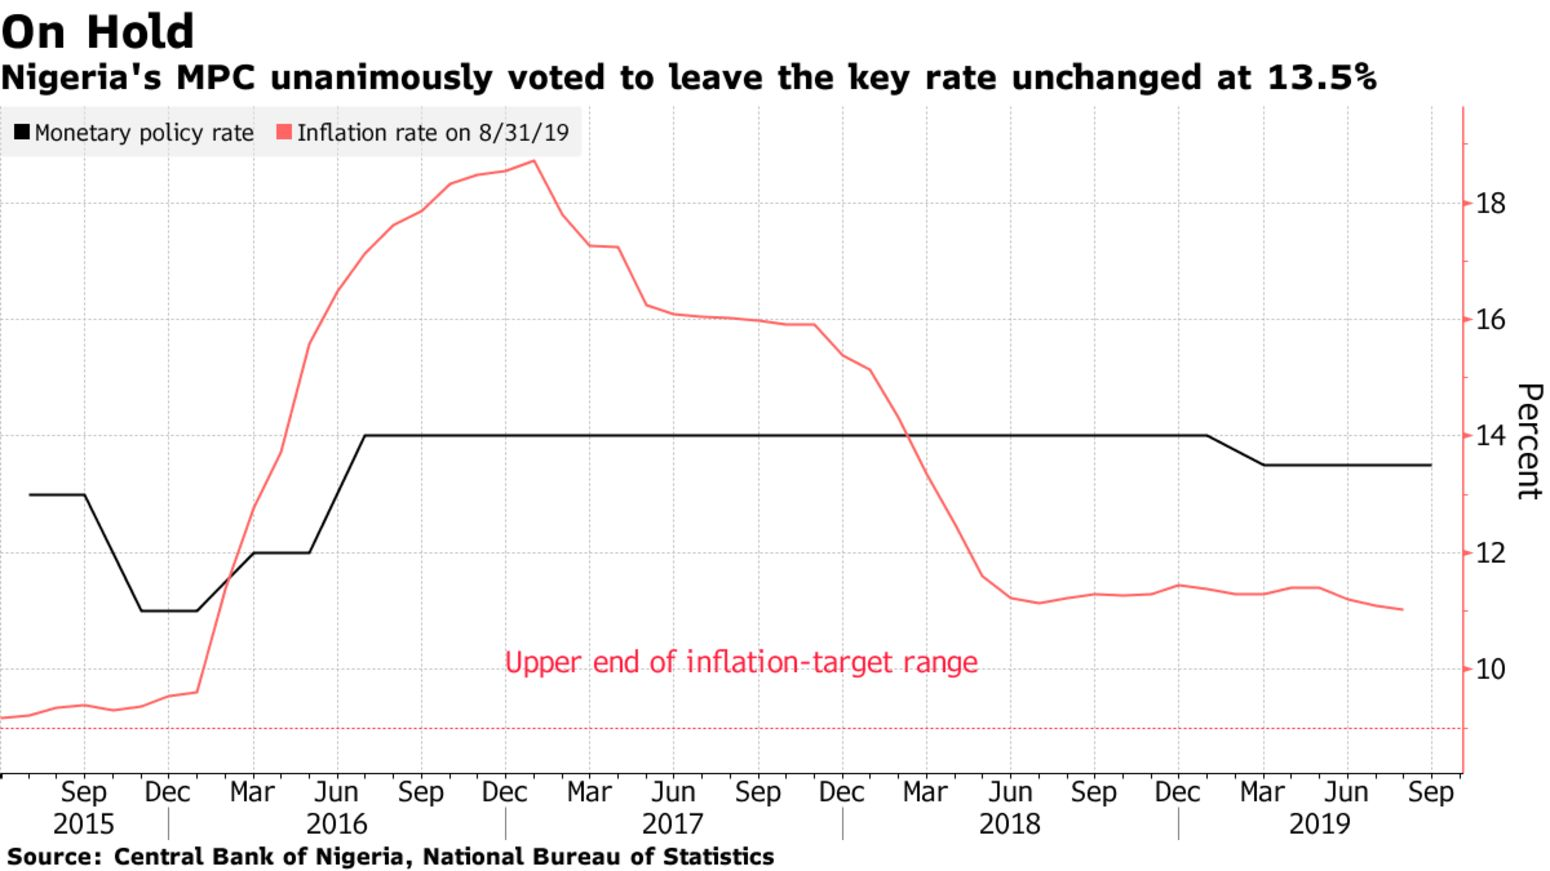 Nigeria's MPC unanimously voted to leave the key rate unchanged at 13.5%